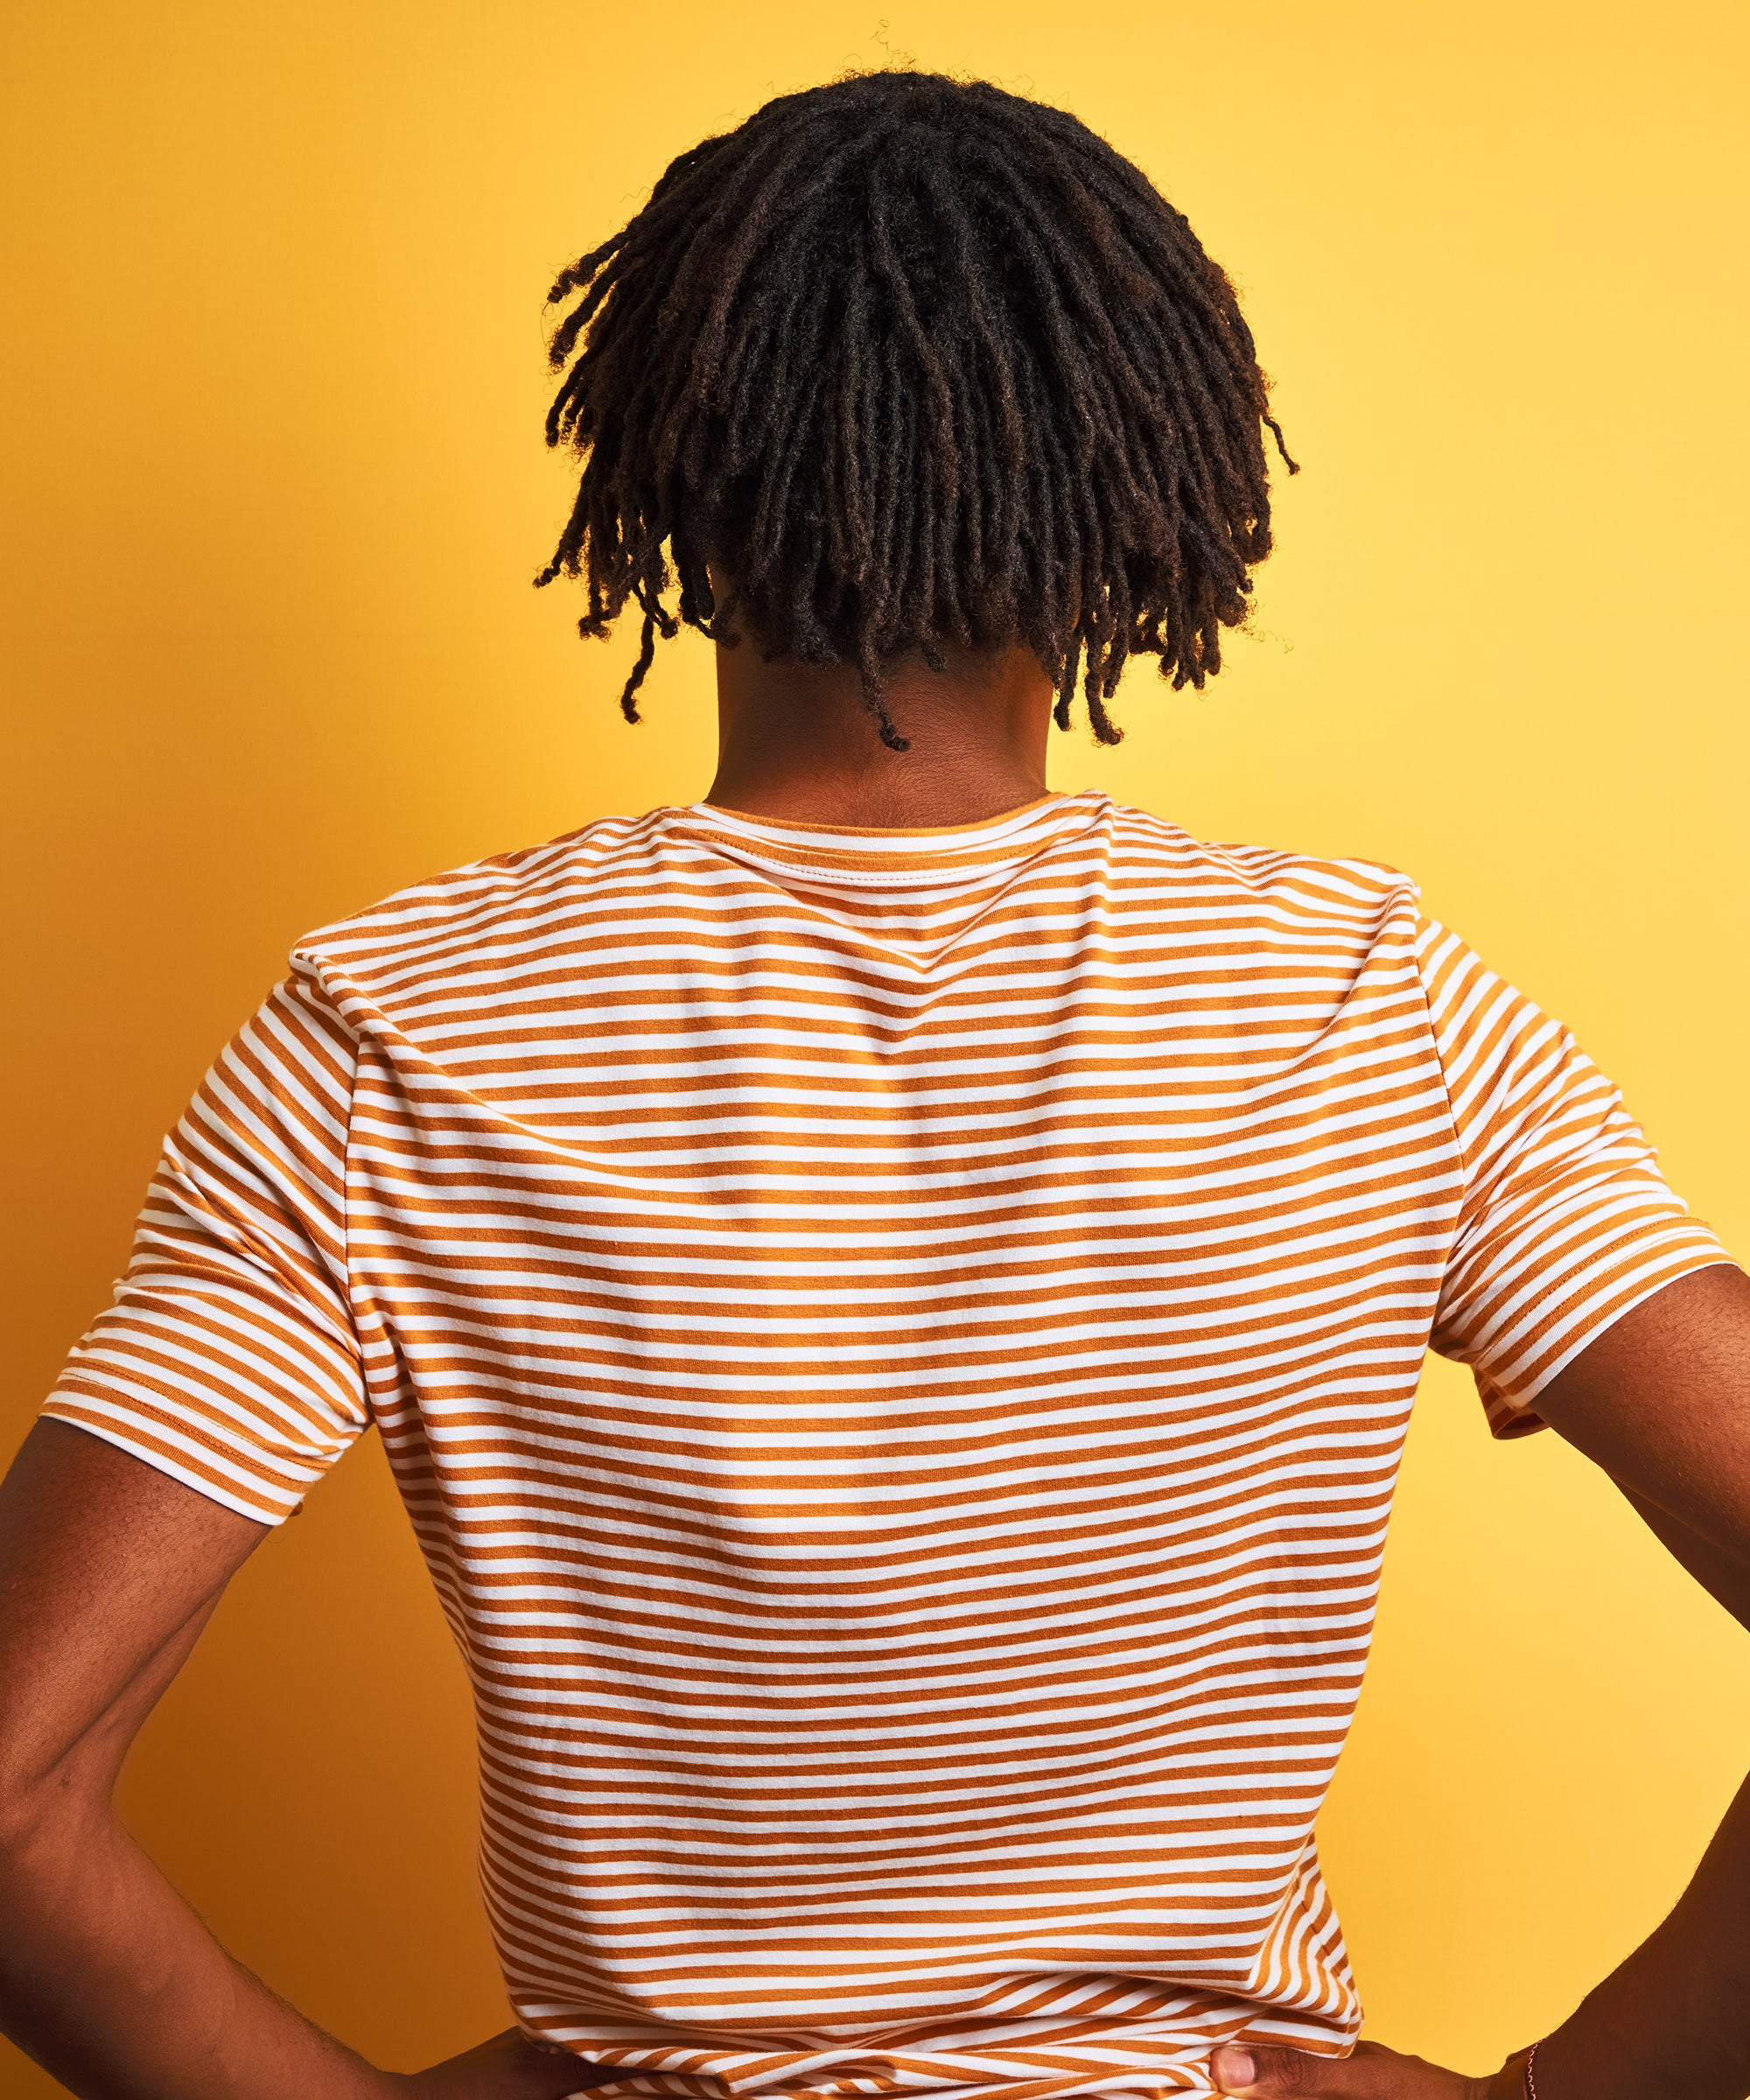 A Texas Teen Is Being Banned From Graduation Until He Cuts His Locs